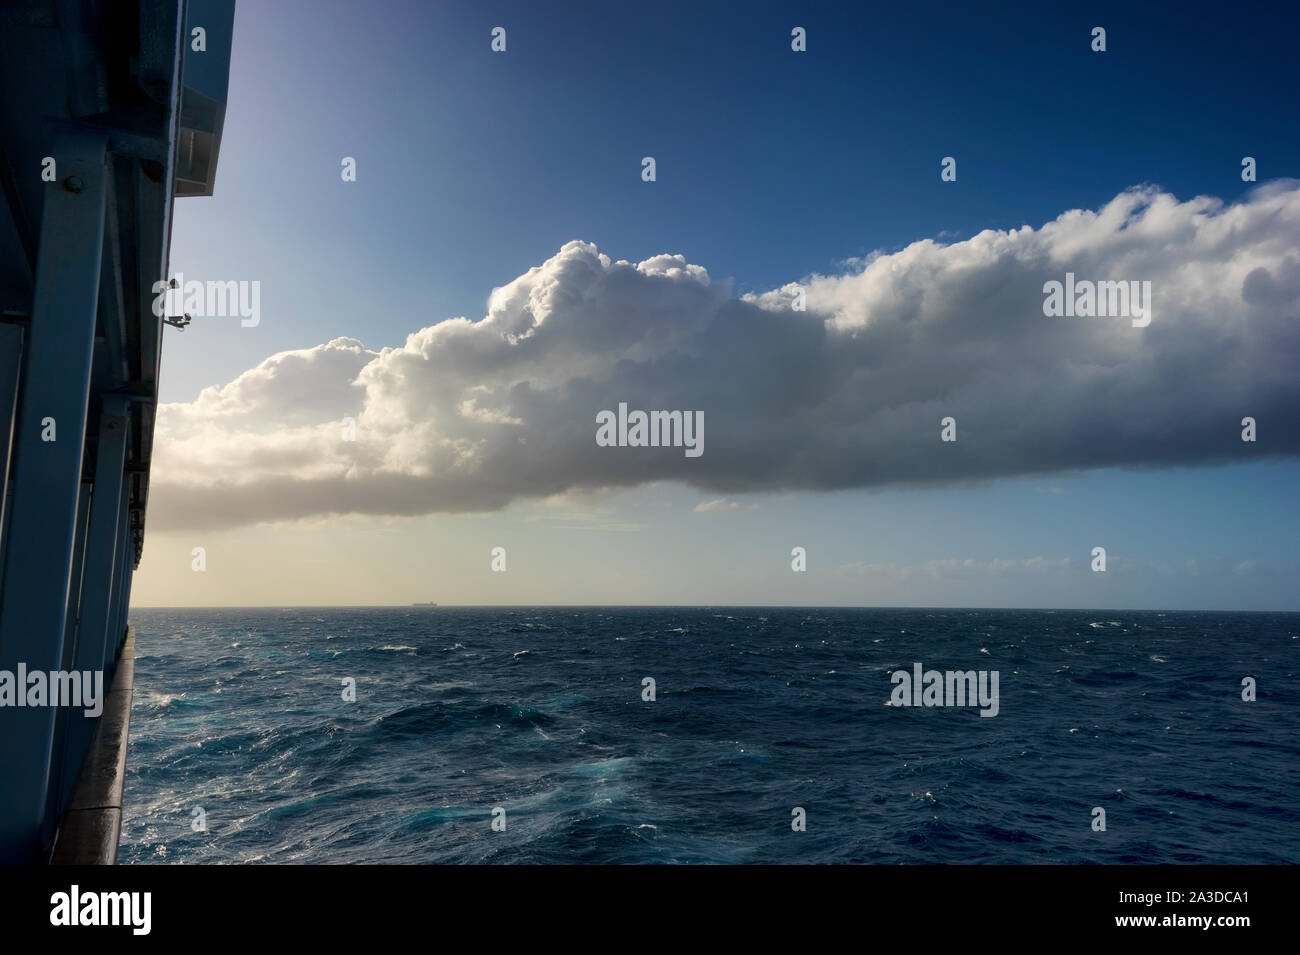 Background image of Atlantic ocean with cloud formations in the sky Stock Photo